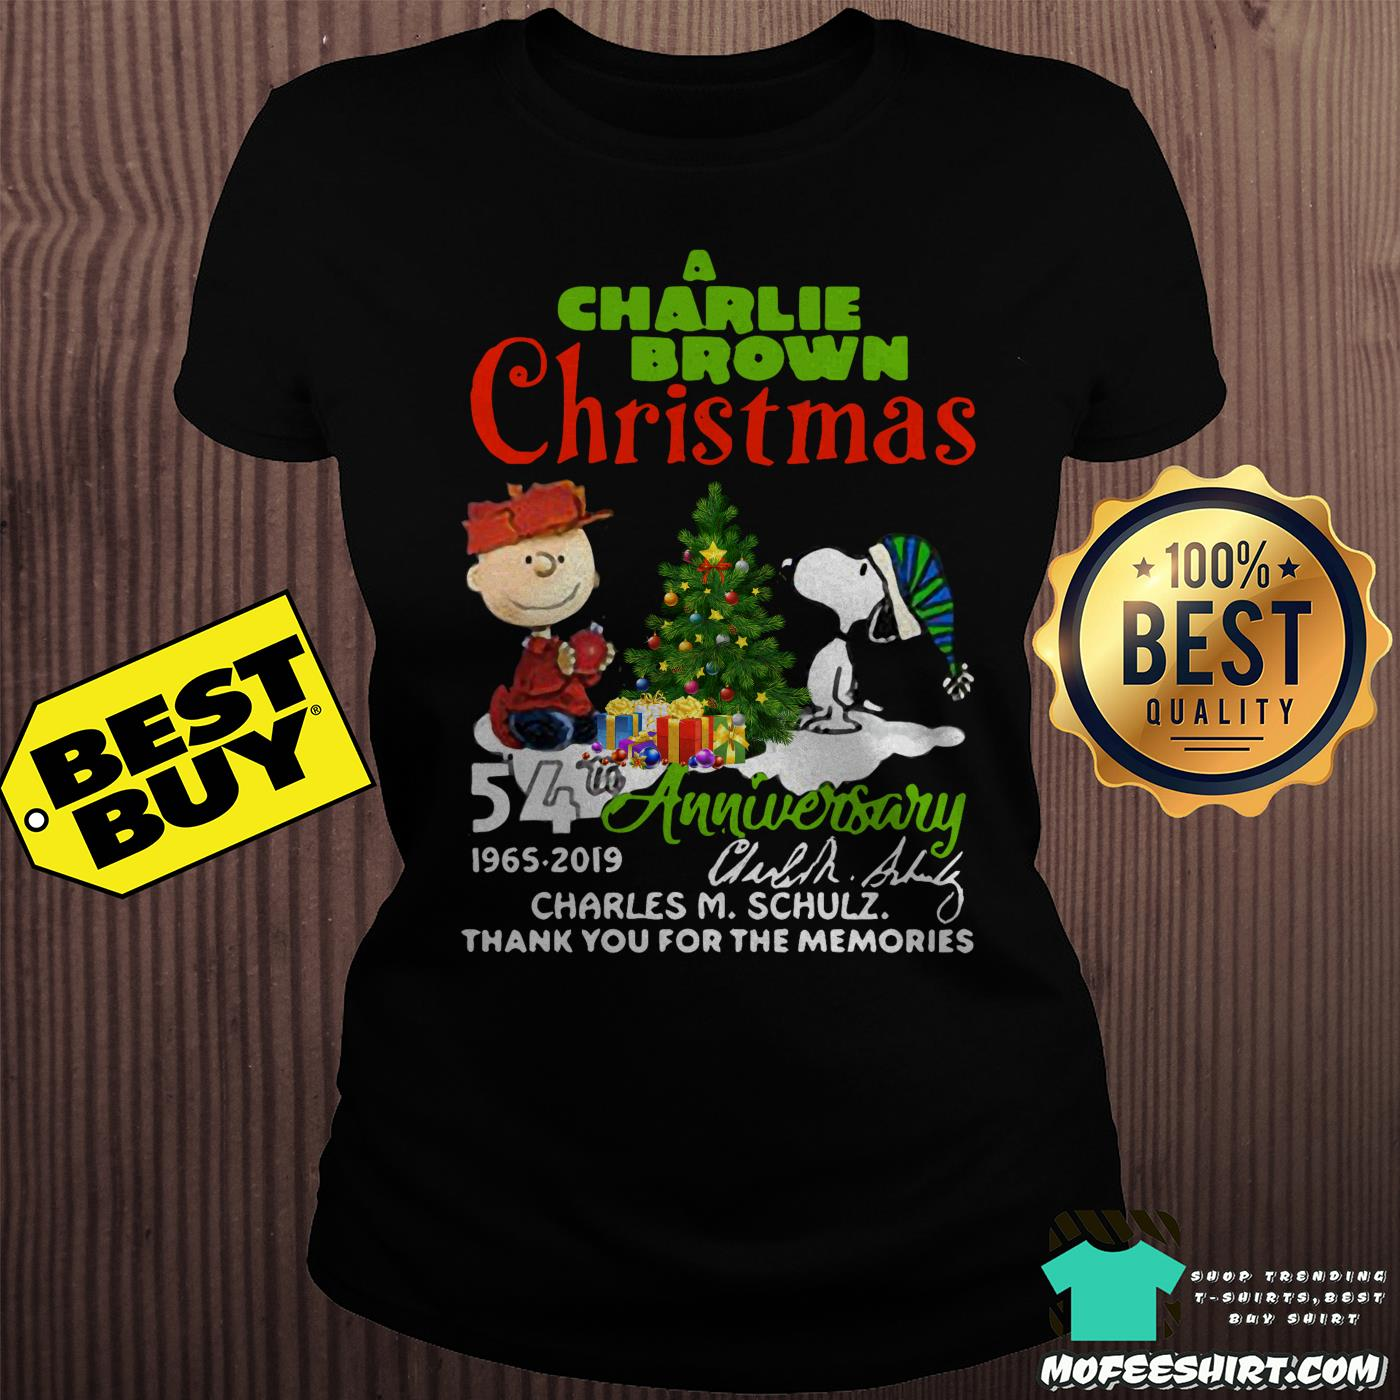 a charlie brown christmas 54th anniversary 1965 2019 signature ladies tee - A Charlie Brown Christmas 54th Anniversary 1965-2019 Signature Shirt